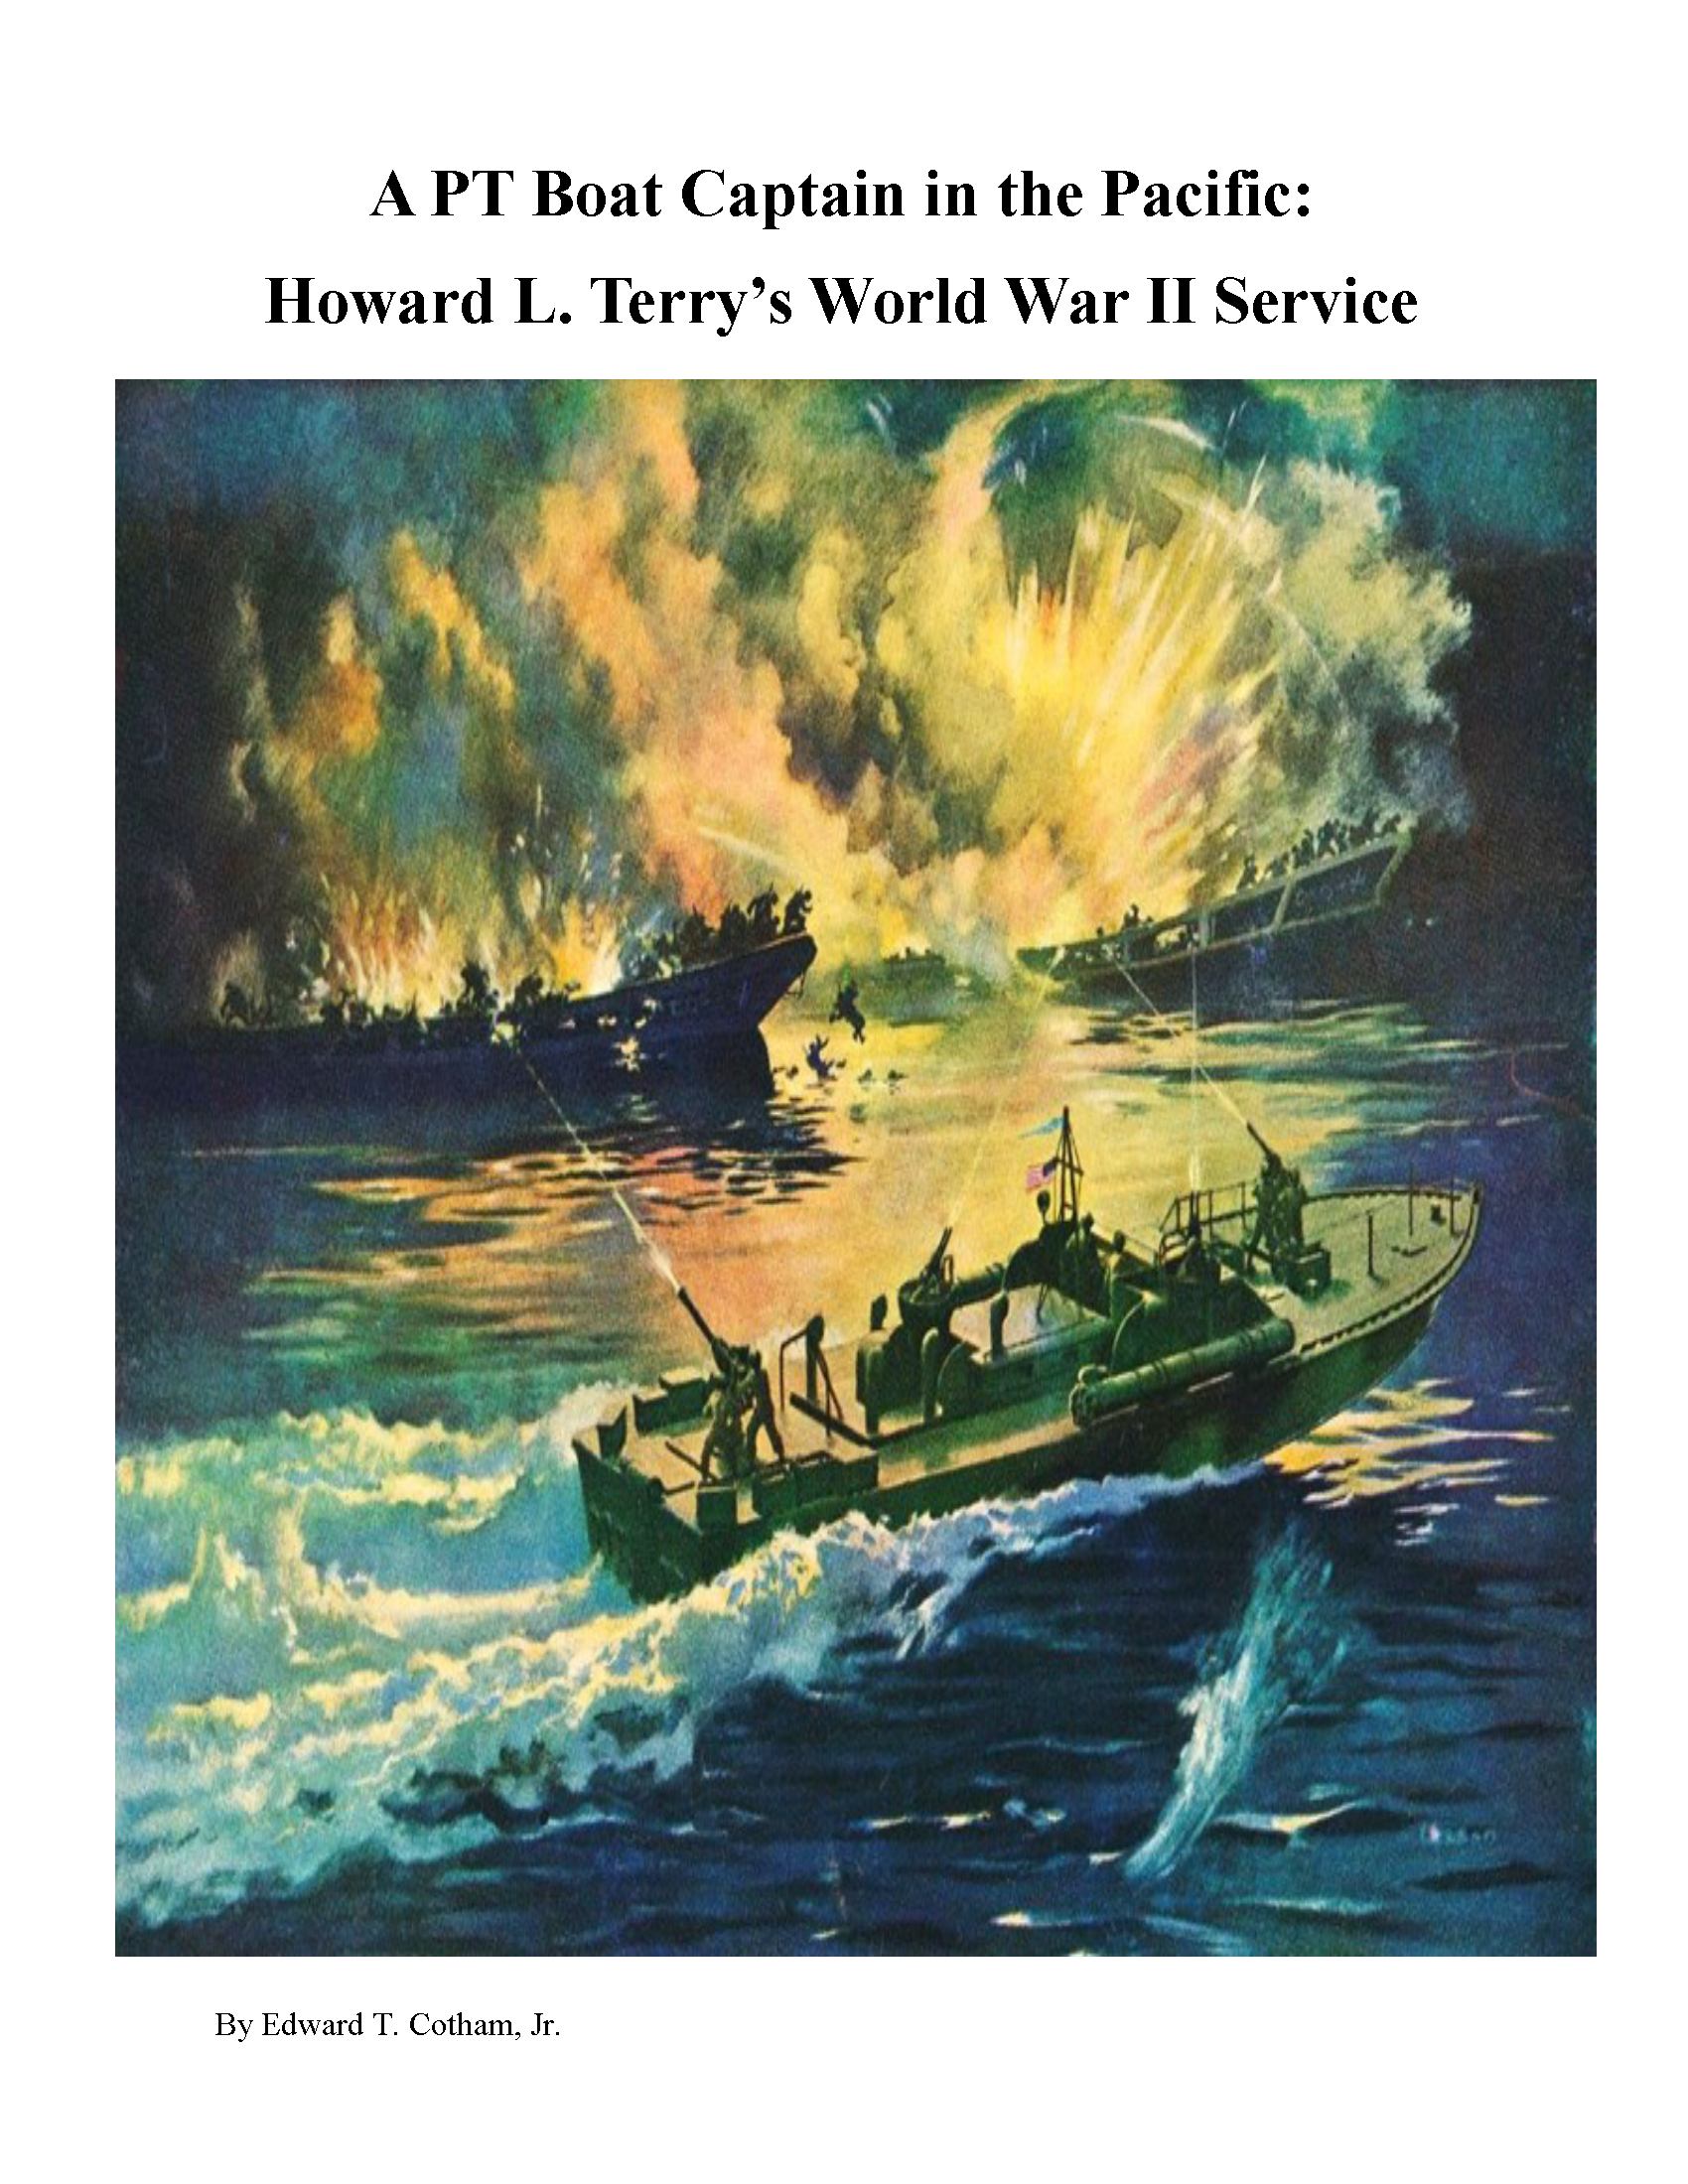 The Terry Foundation A PT Boat Captain in the Pacific